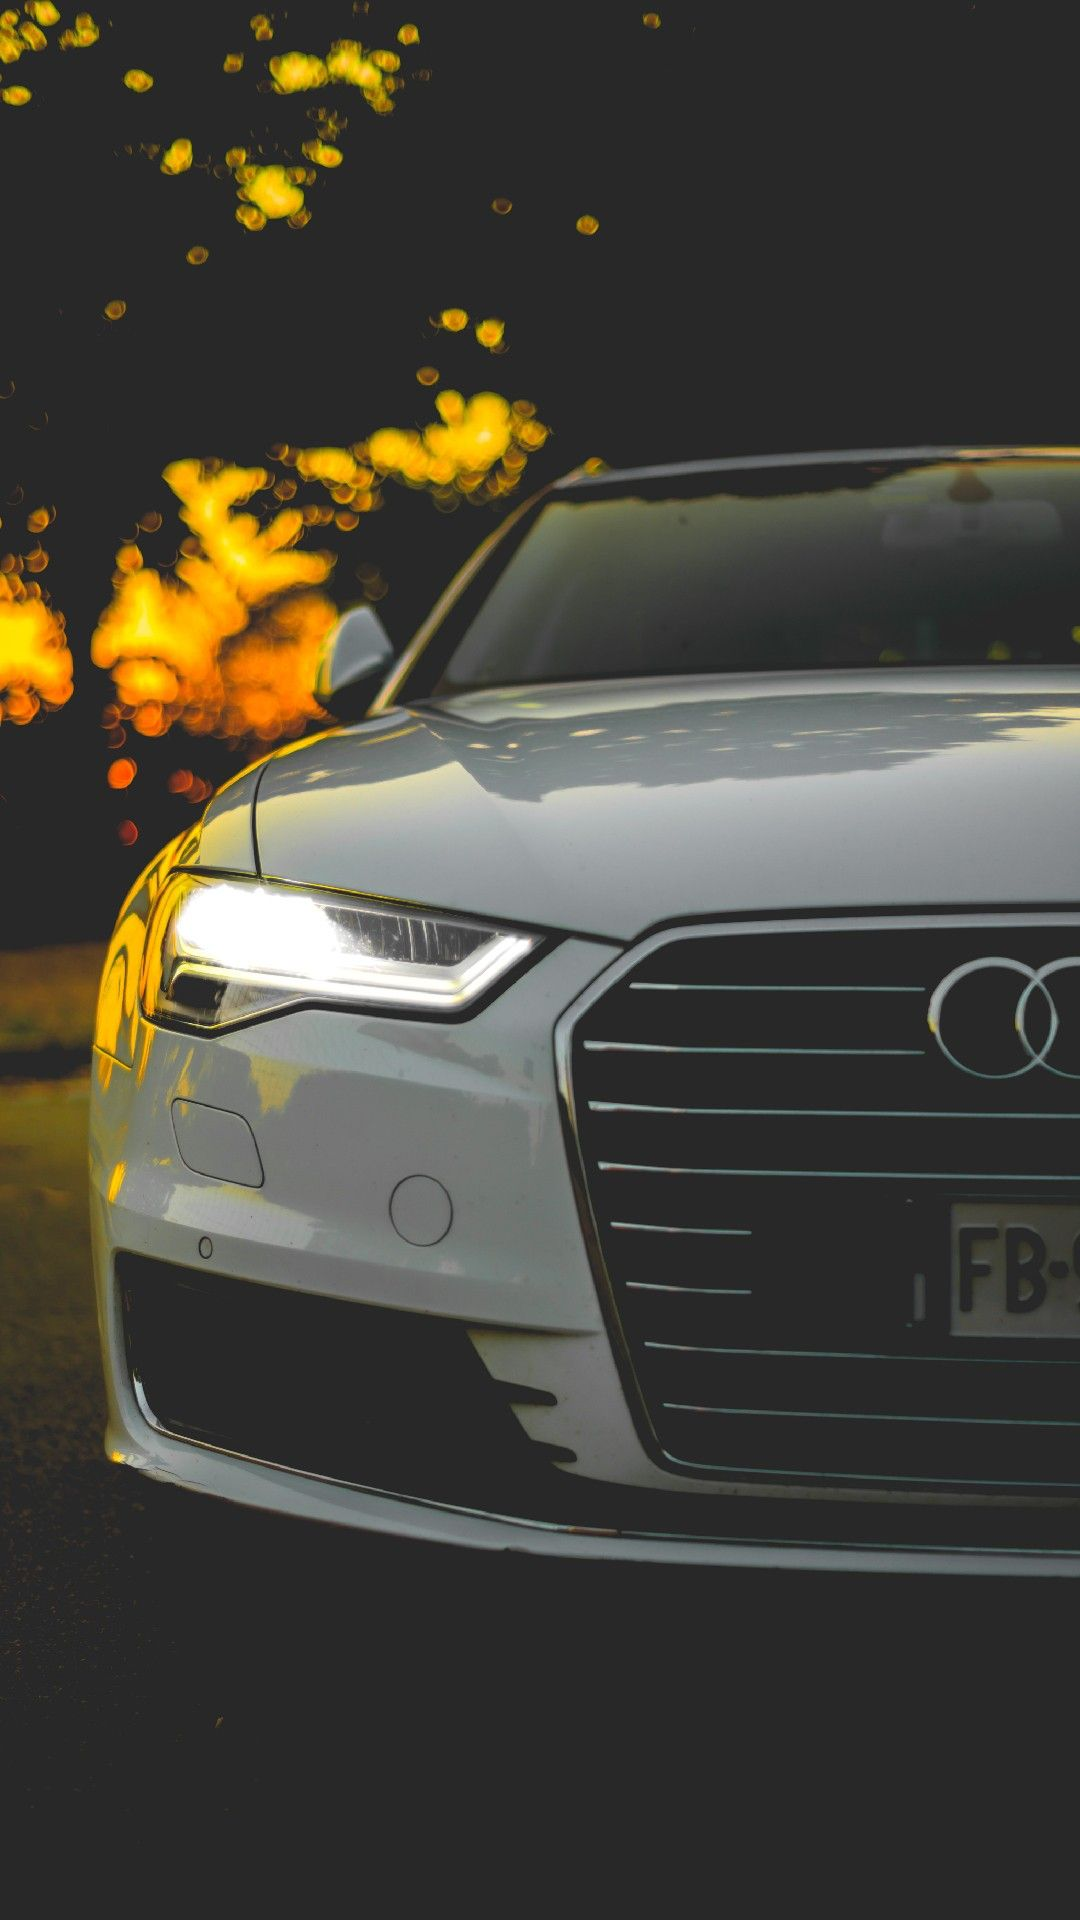 audi a6 01 phone wallpaper lockscreen hd 4k android ios check more